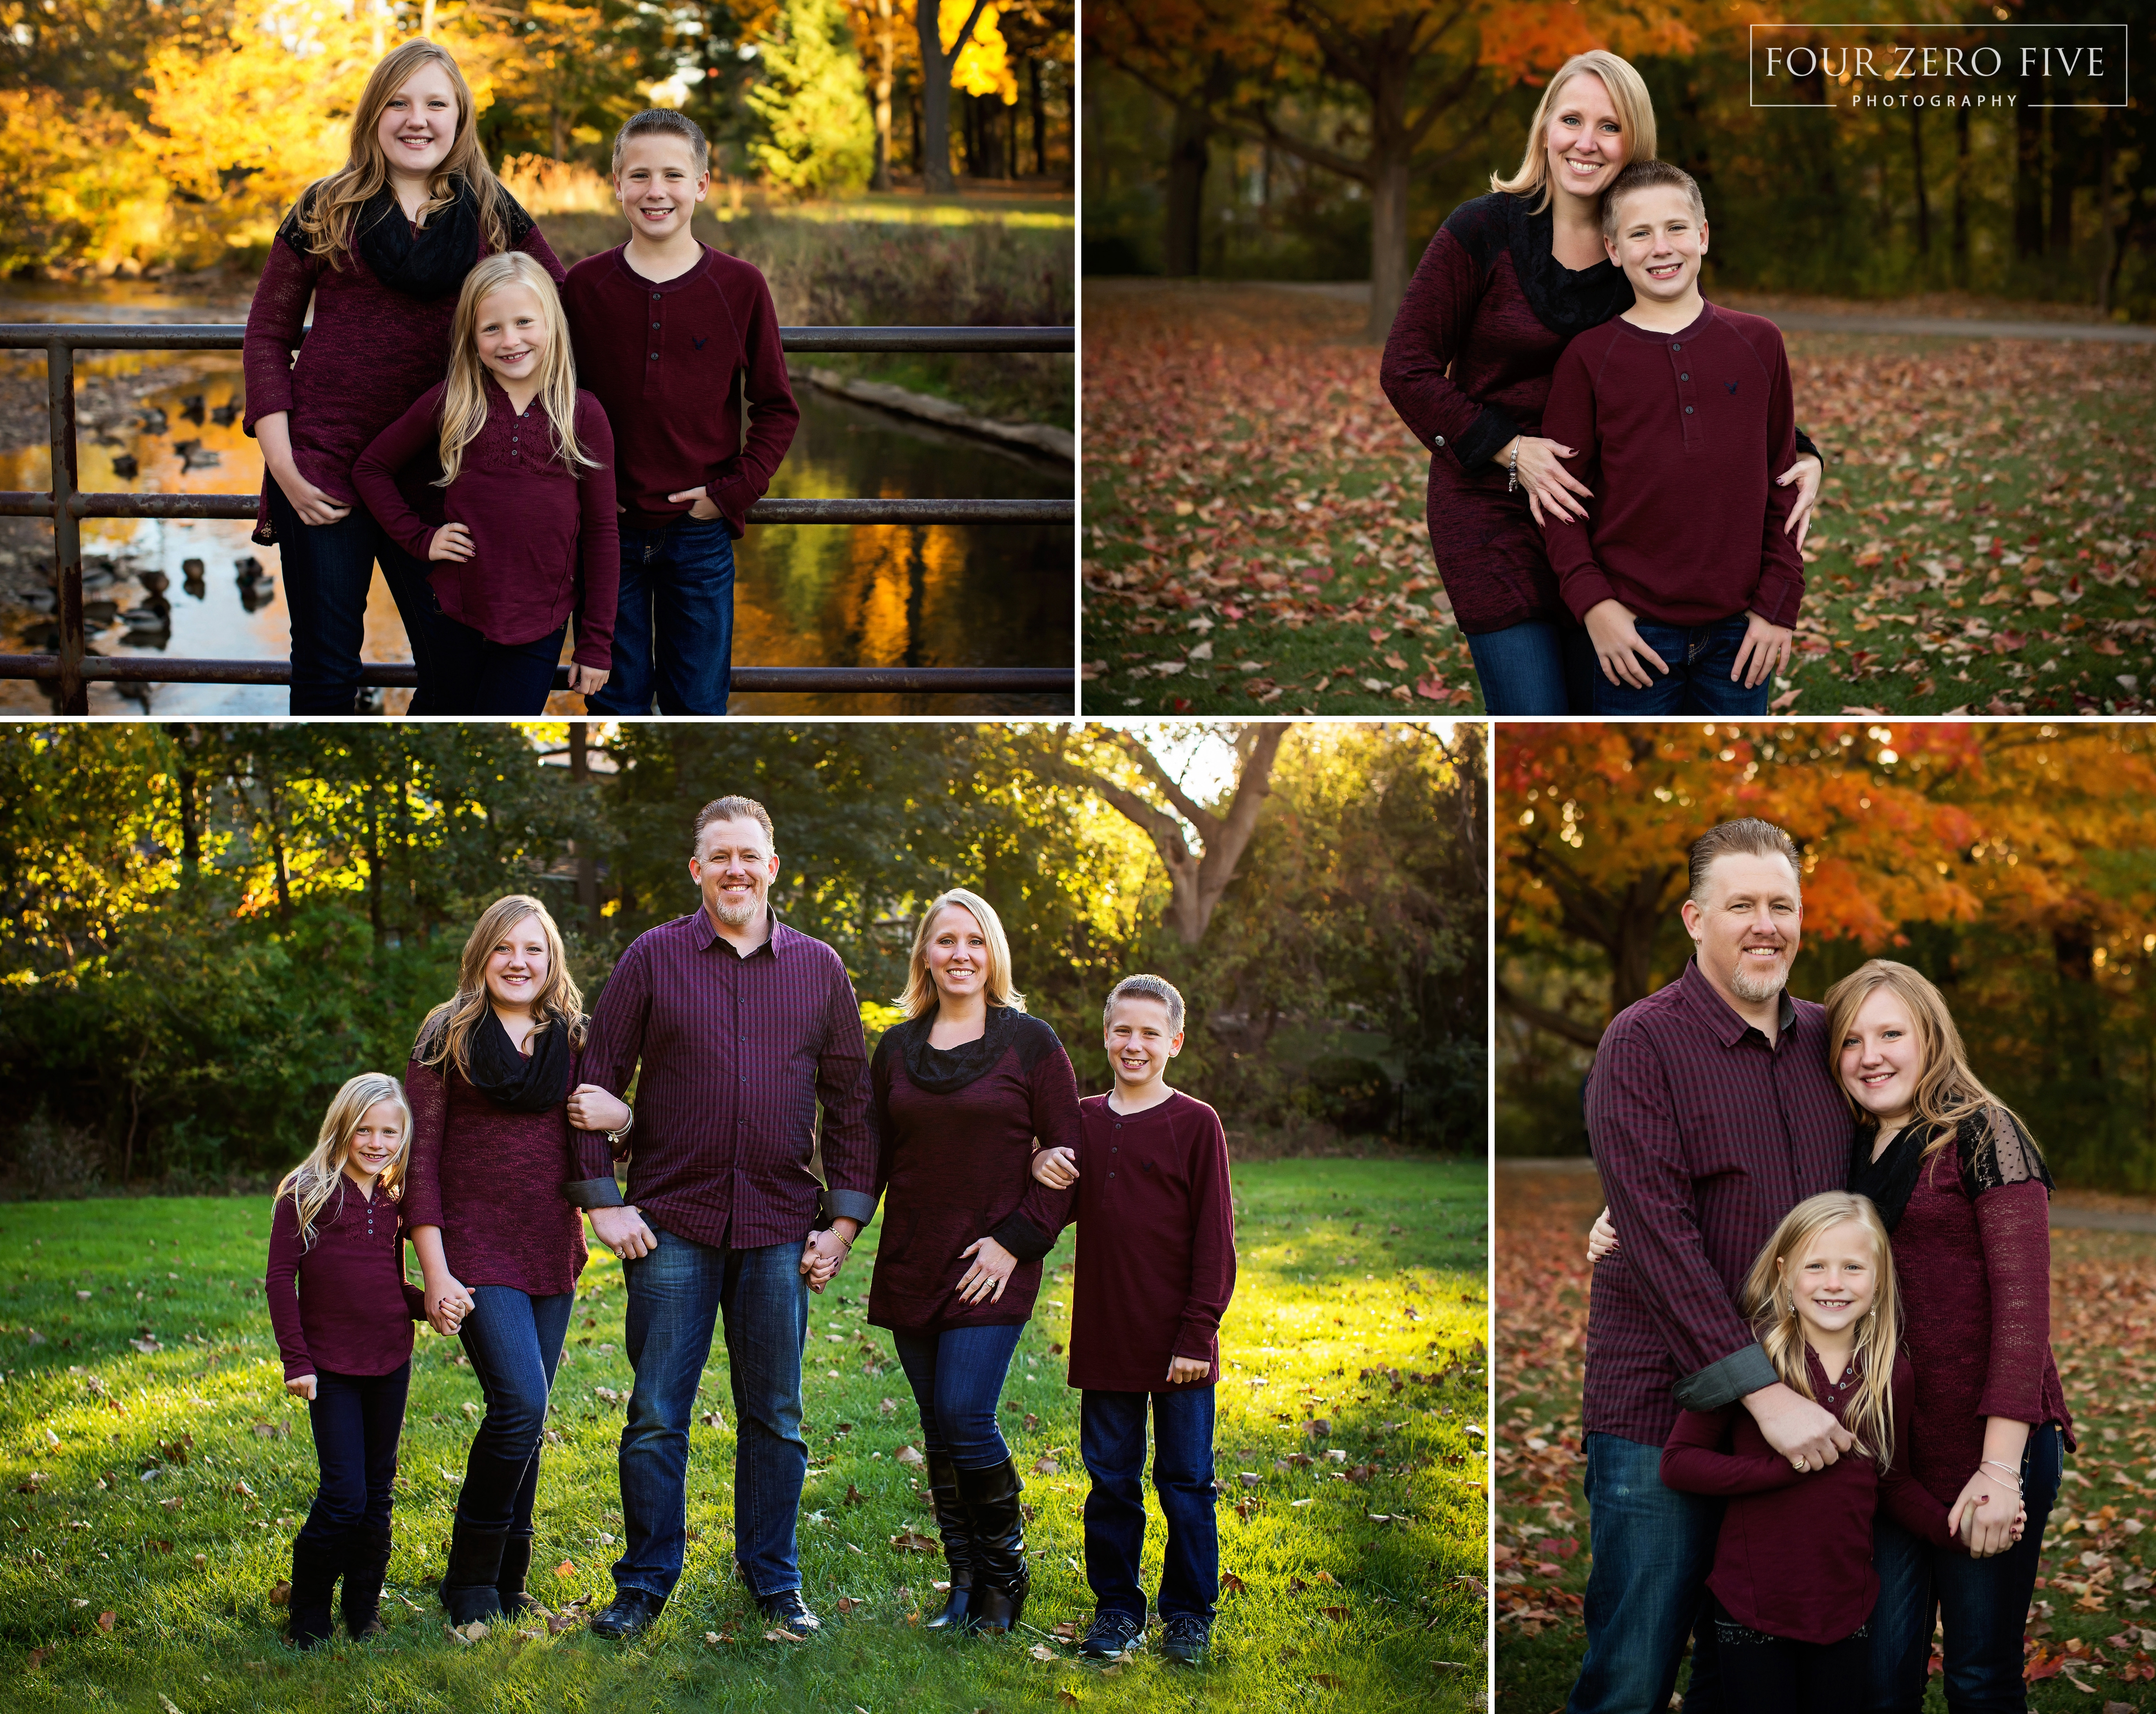 beautiful family picture black outfit ideas selection | photo and